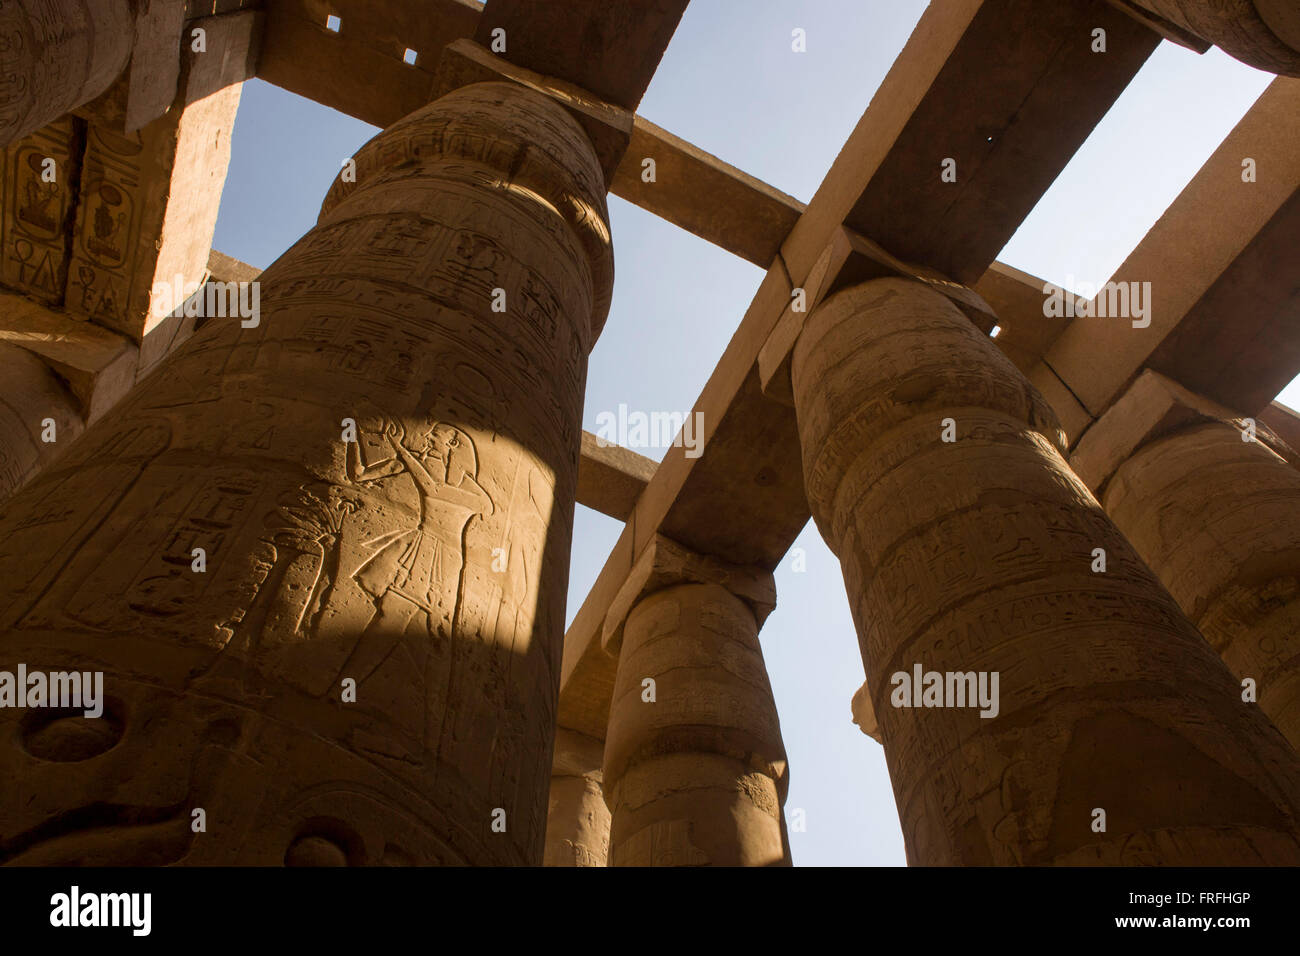 The tall columns in the Hypostyle hall at the Temple of Amun at Karnak, Luxor, Nile Valley, Egypt. The Karnak Temple - Stock Image